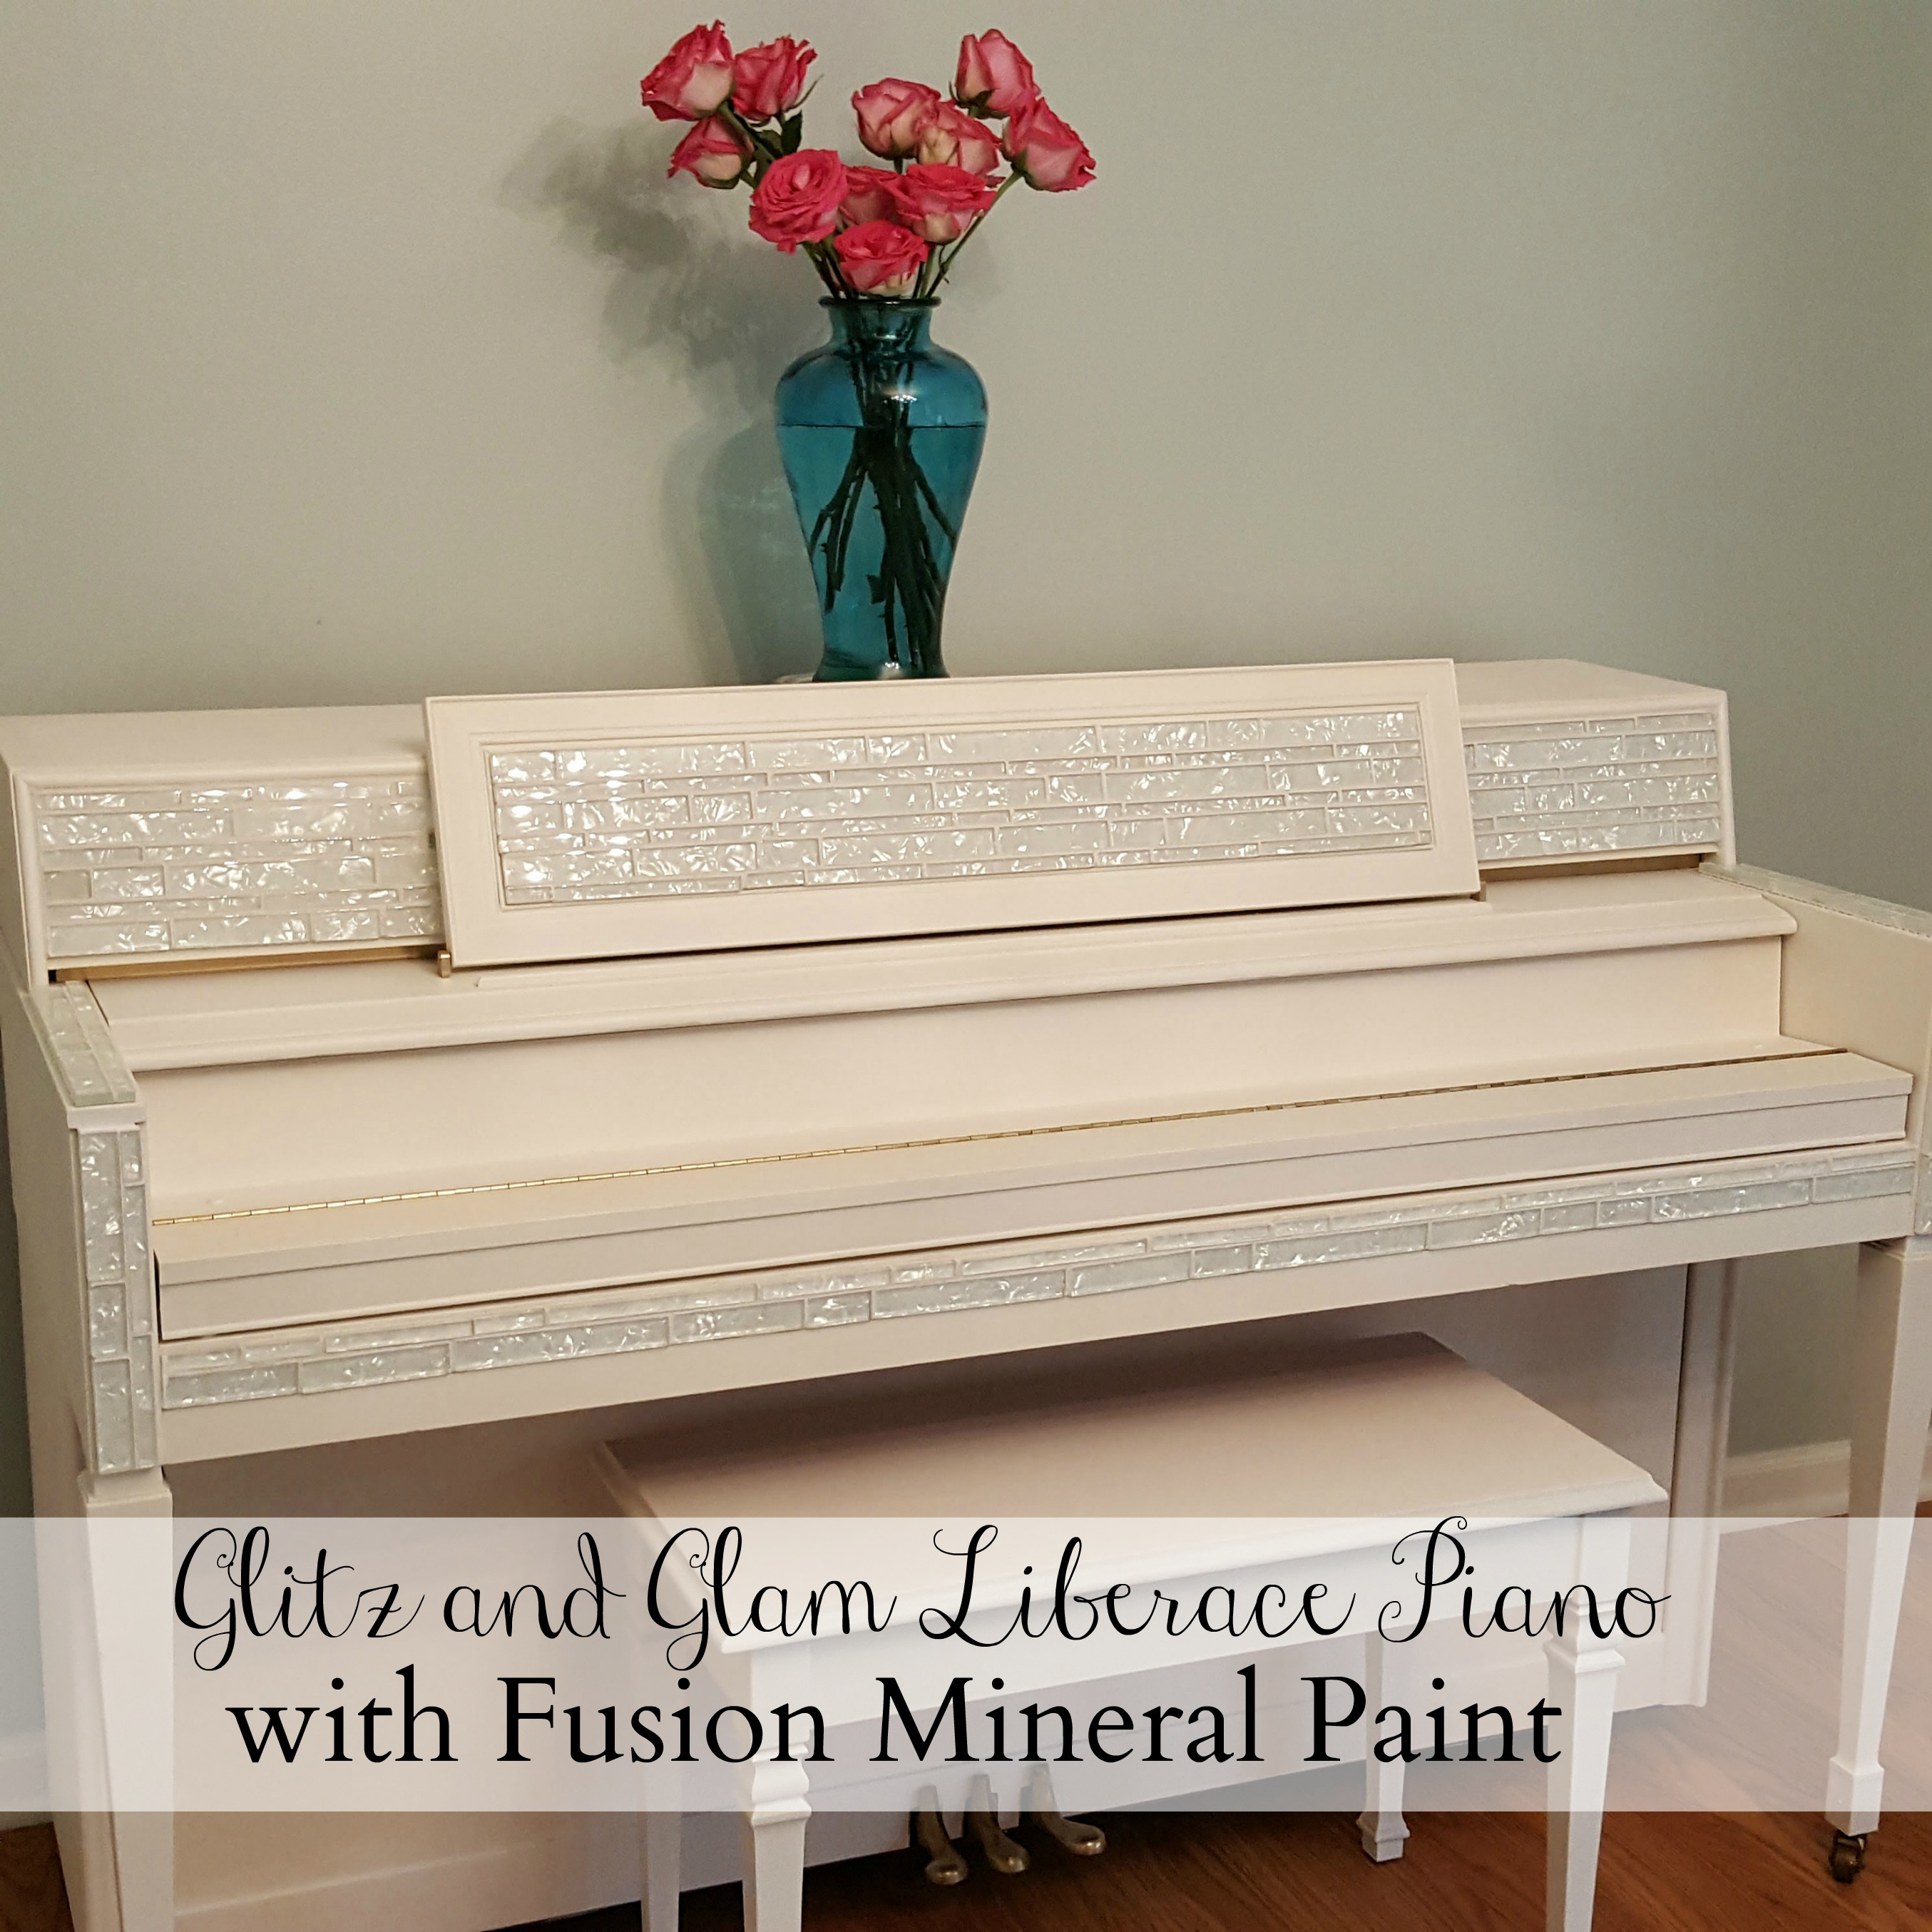 A glitz and glam piano transformation with Fusion Mineral Paint